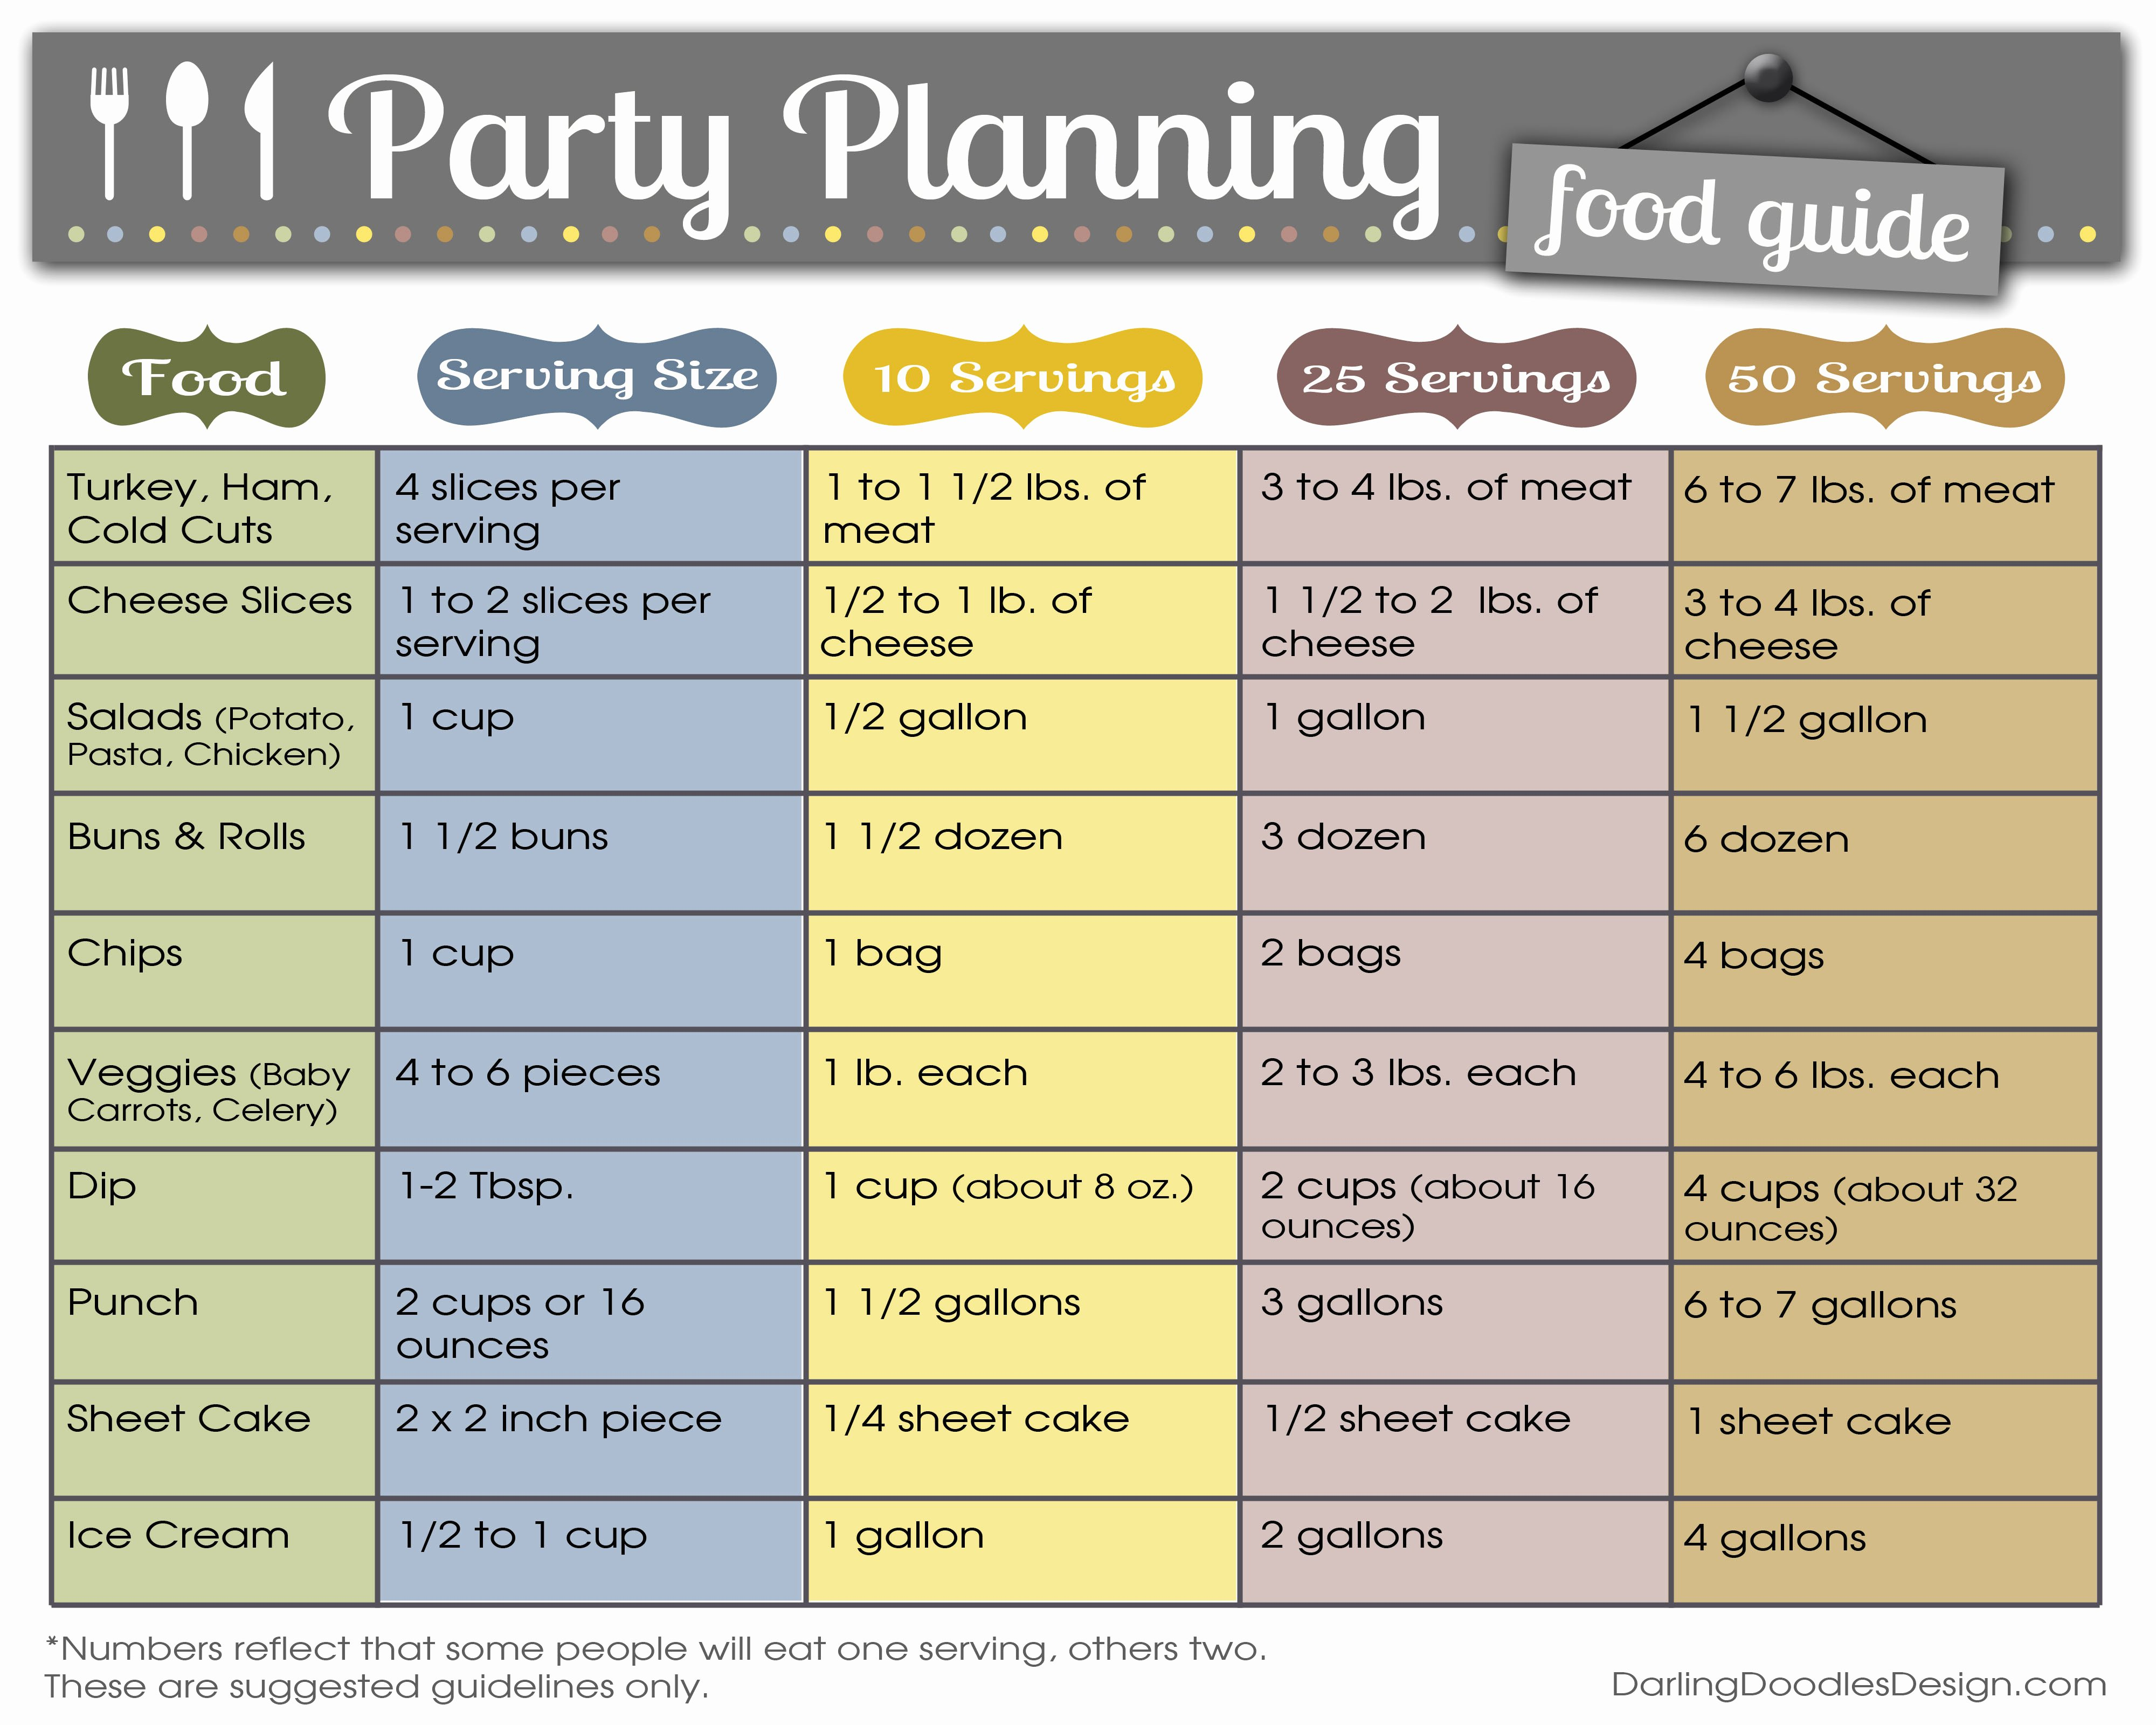 Event Planning Guide Template Awesome Party Planning 101 Darling Doodles